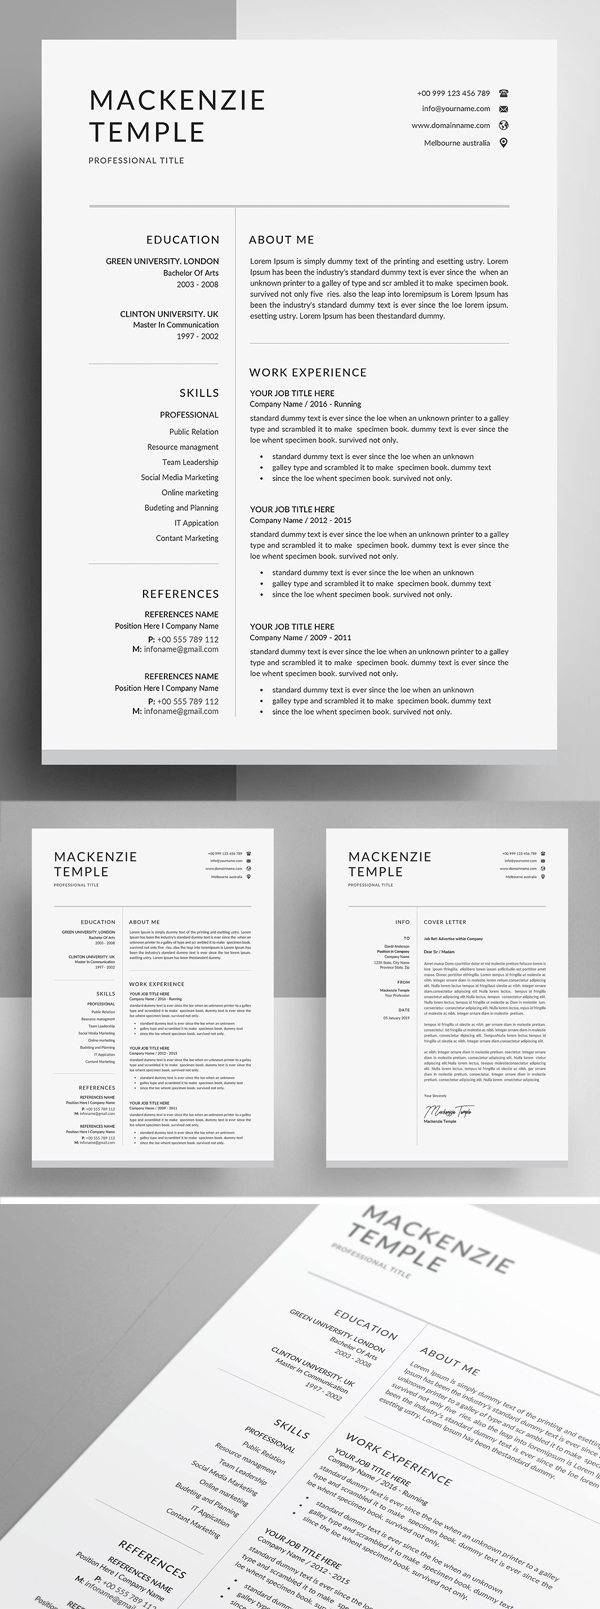 25 Best Resume Templates For 2020 Graphics Design